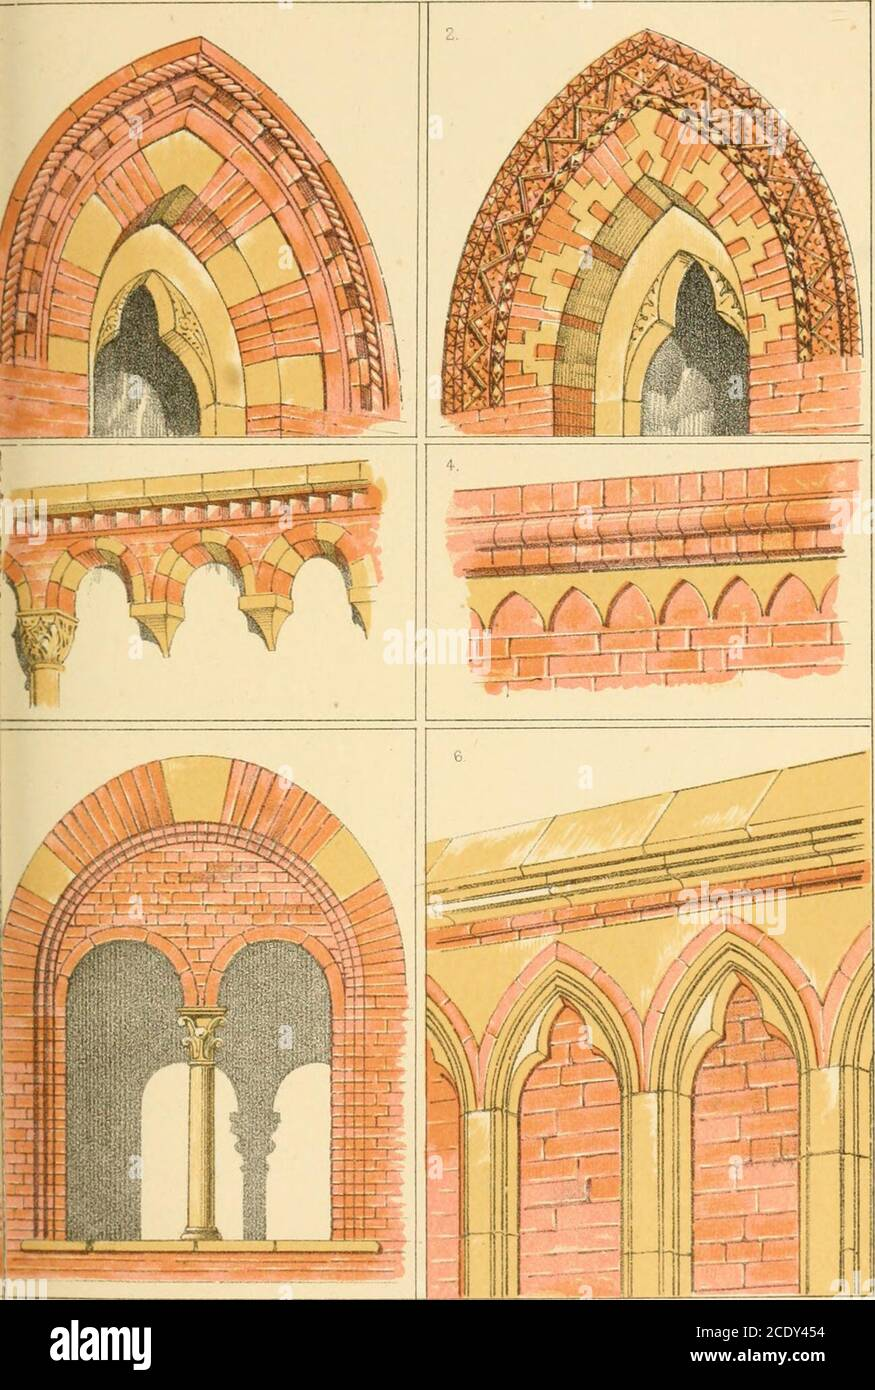 Brick And Marble In The Middle Ages Notes Of Tours In The North Of Italy Ters Which Finish At The Top In An Arcaded Cornice Of Brick Ineach Of The Two